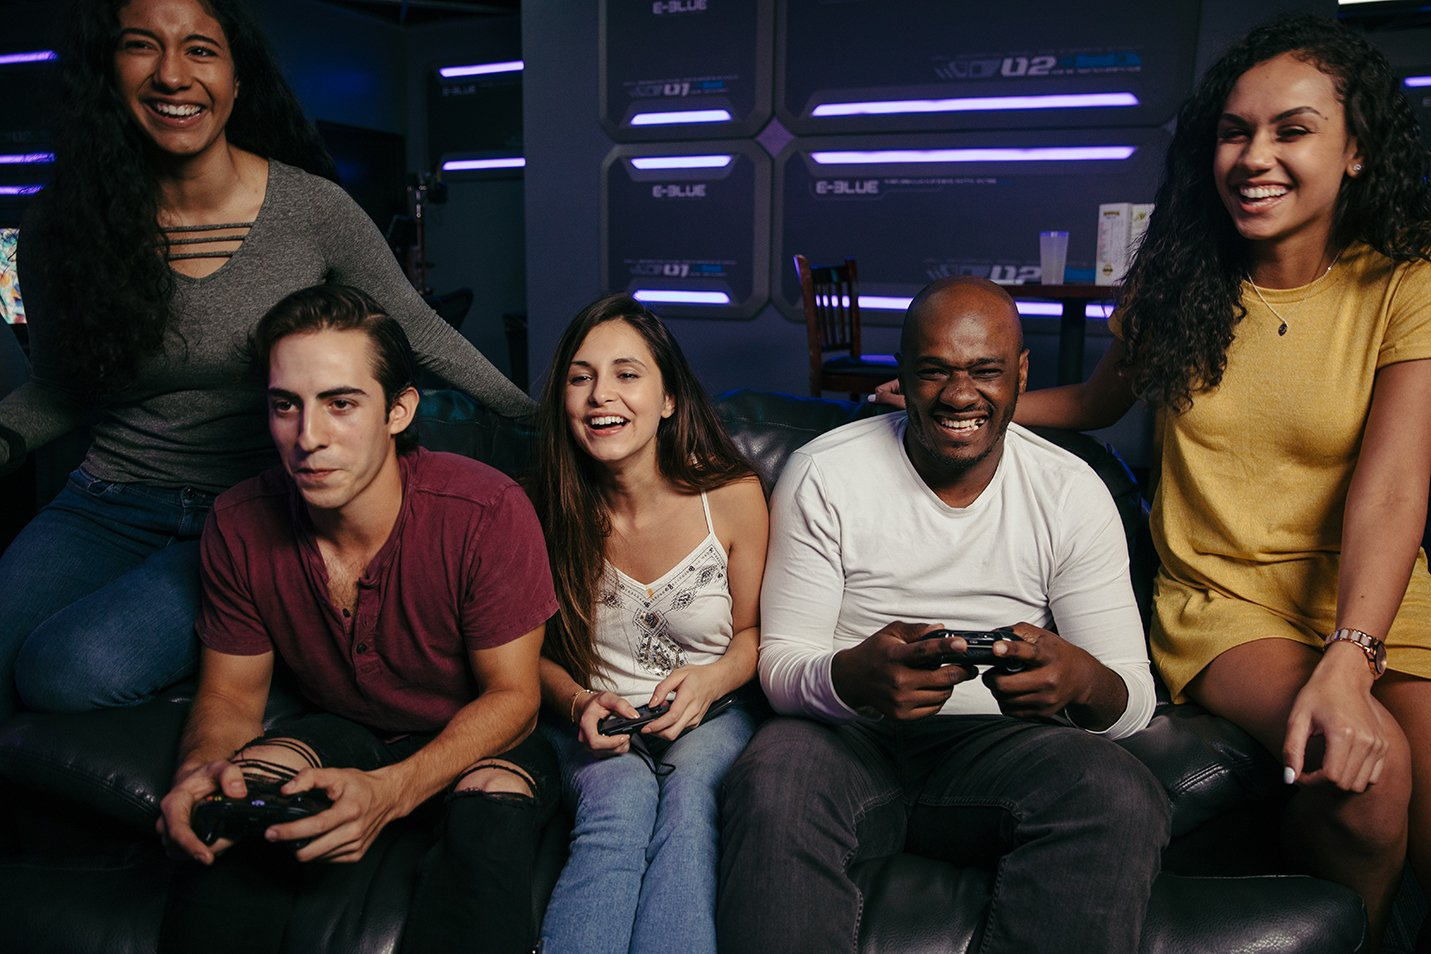 Friday nights made better with friends at GameWorks - Seattle